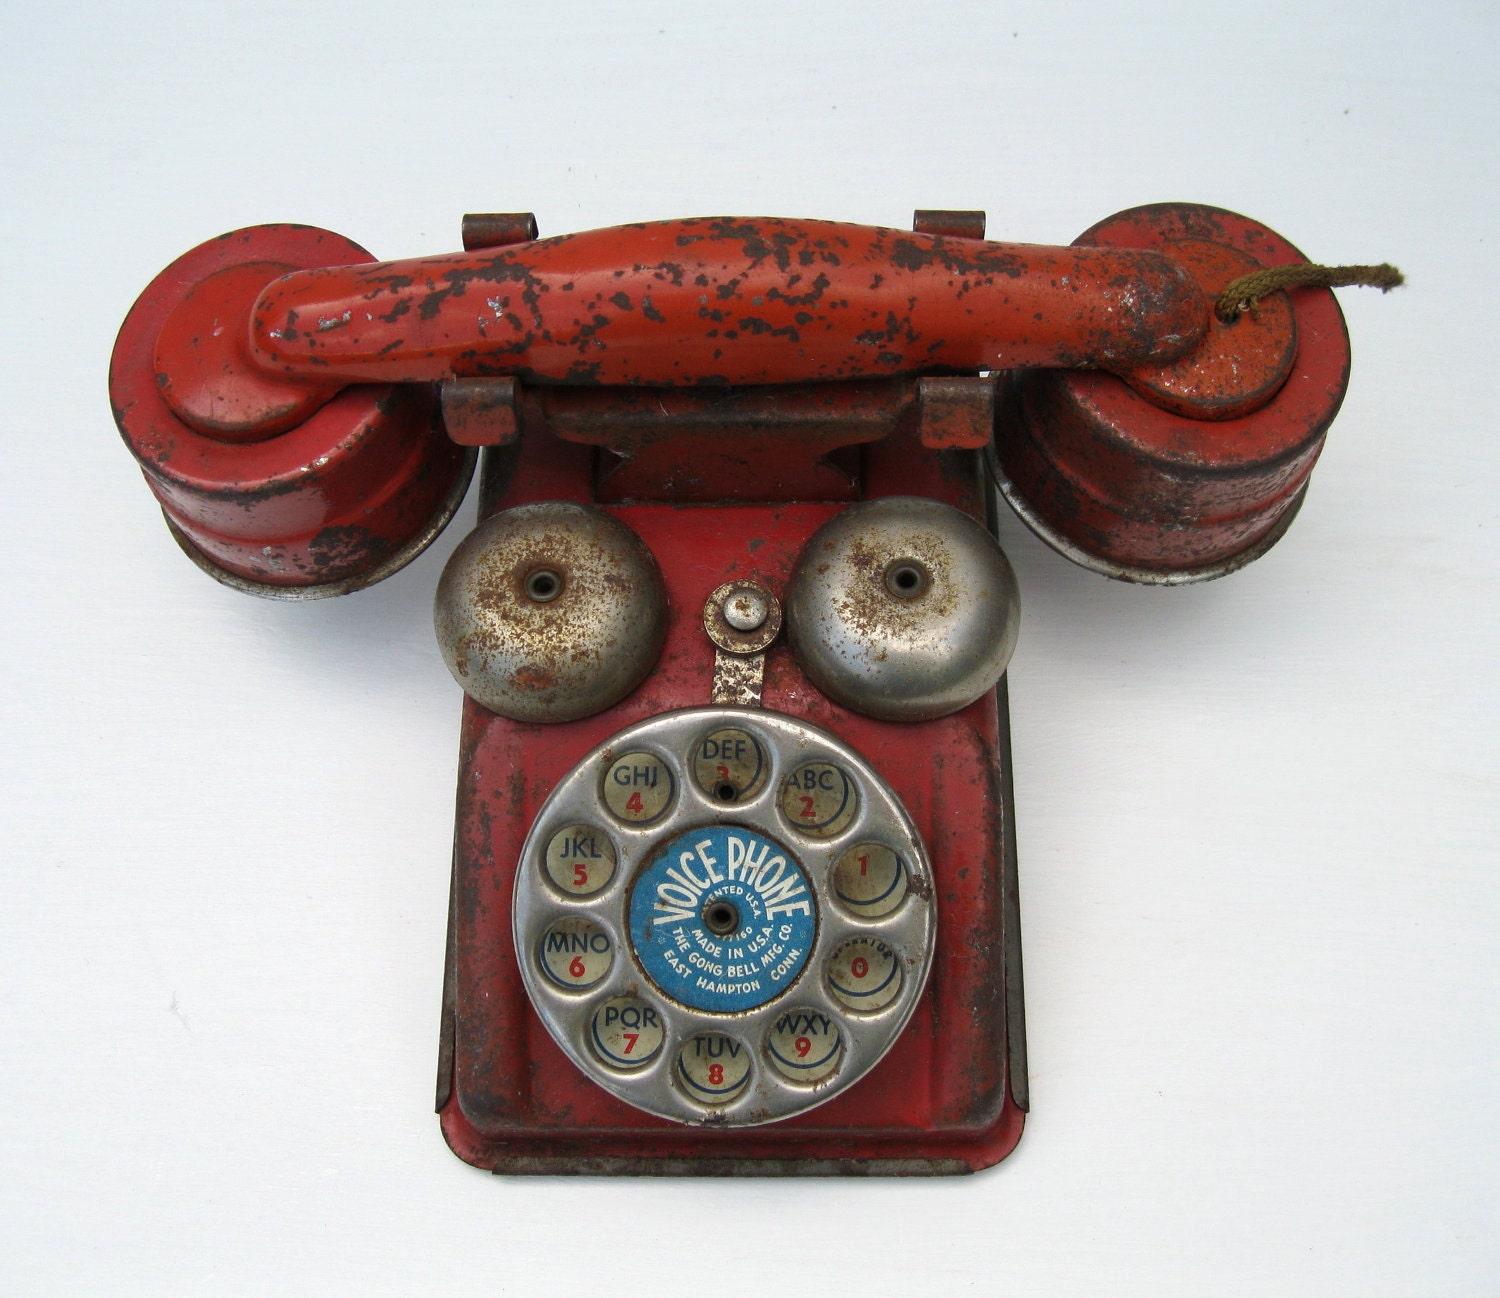 Toys From The 40s : Vintage toy telephone red metal voice phone s era